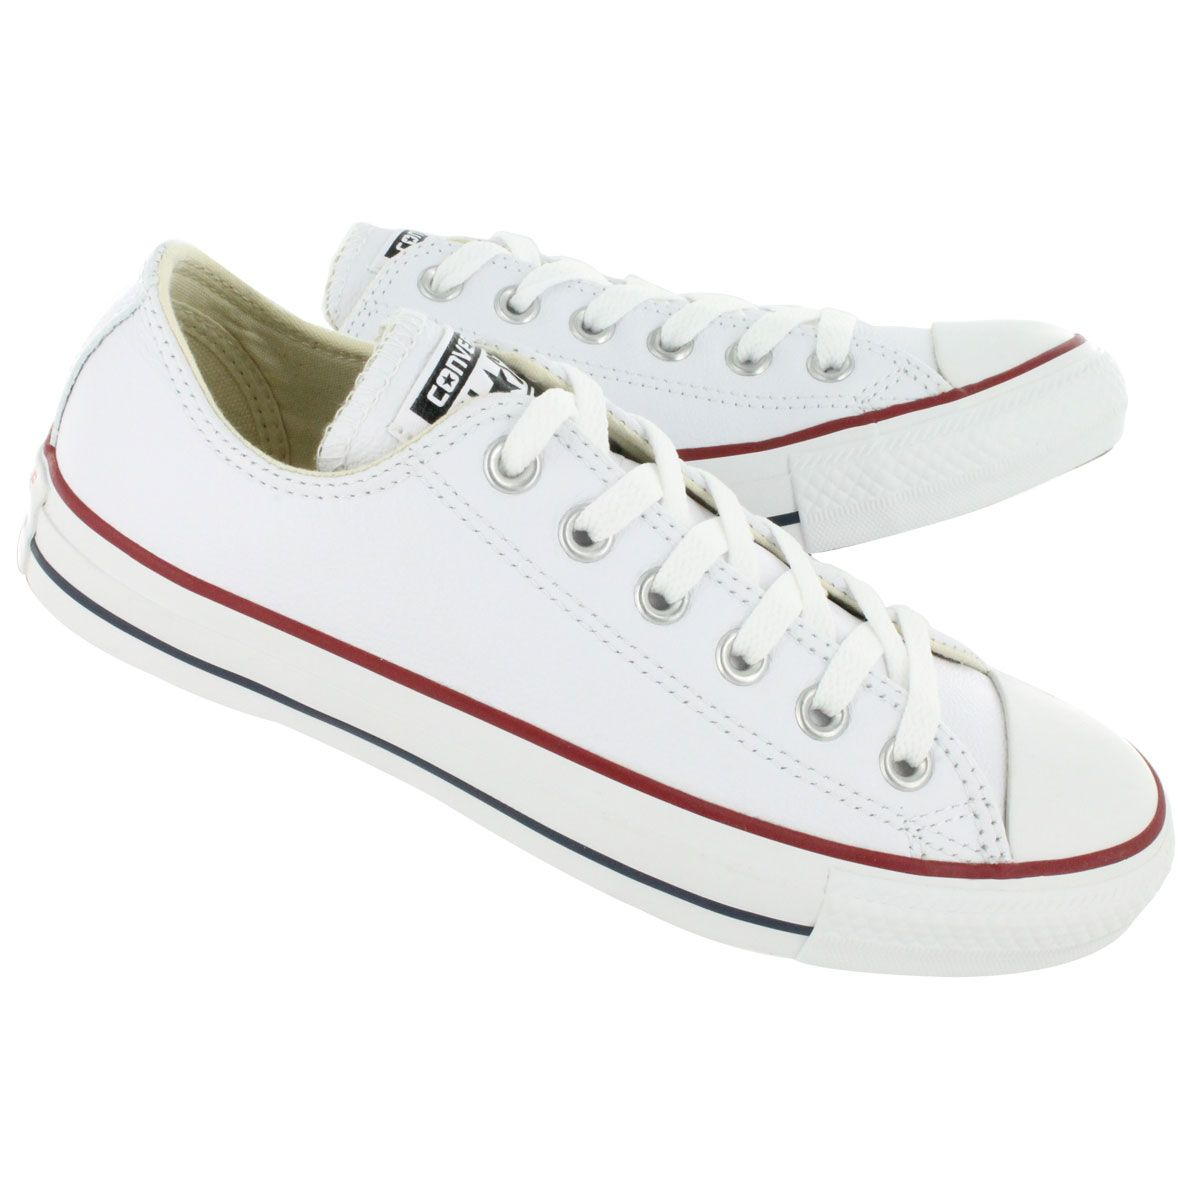 Women's CHUCK TAYLOR LEATHER OX white sneakers | White